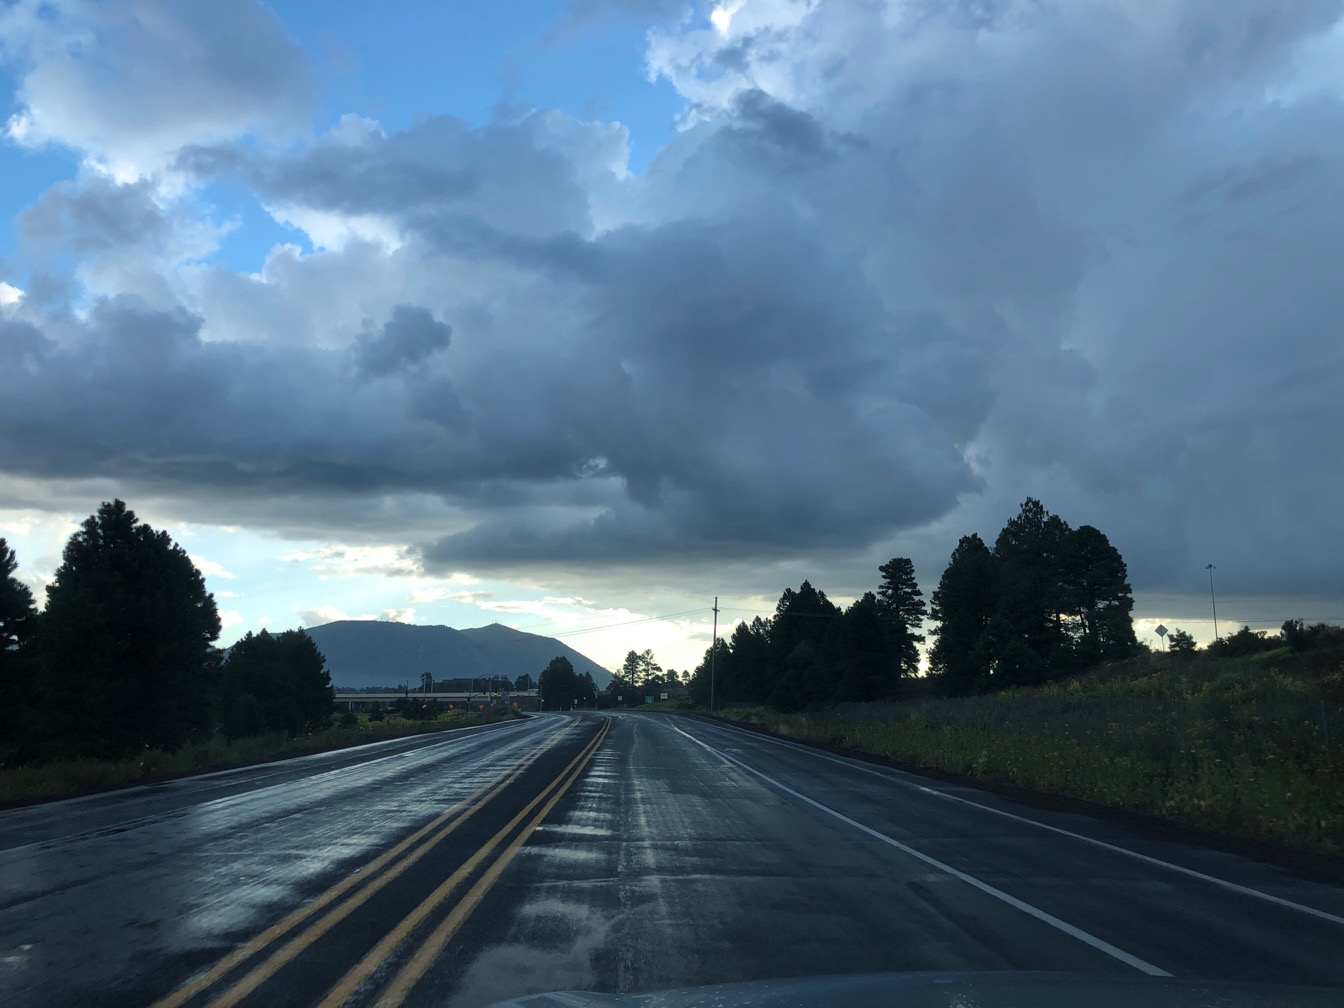 Clouds over mountains and a wet road in morning light.